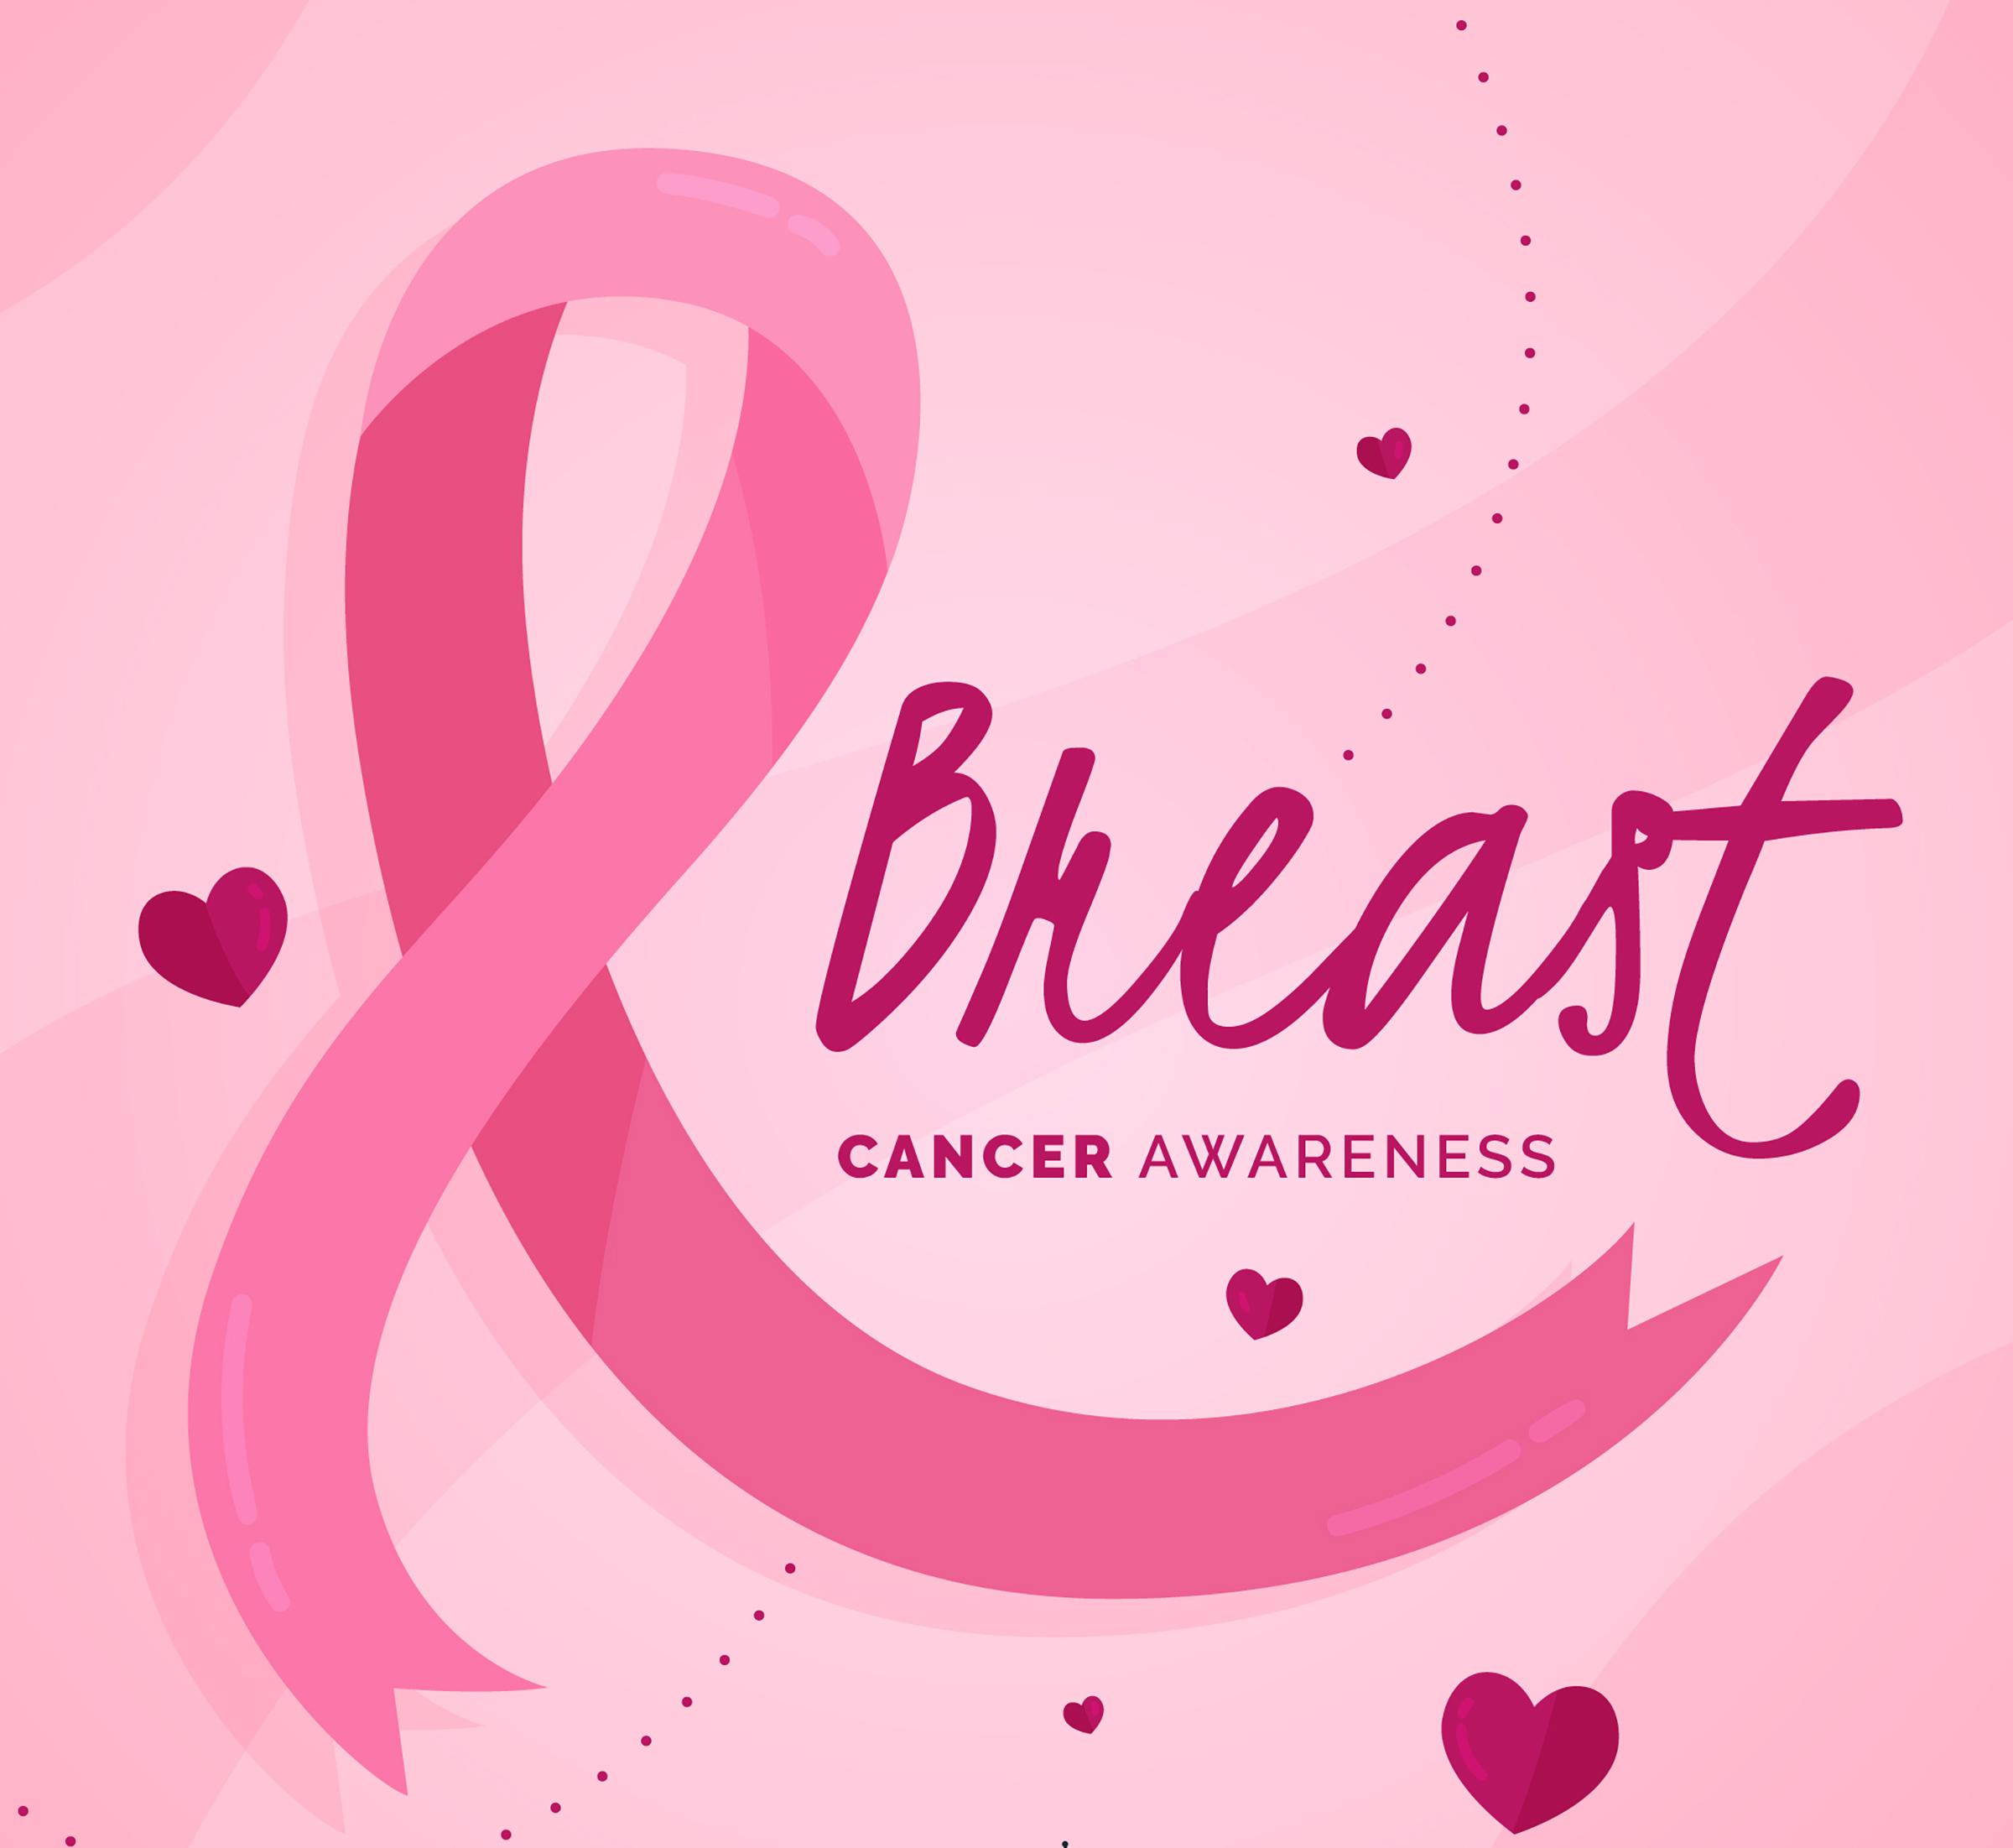 Breast Cancer Awareness, some risk factors especially if you work in a medical field.